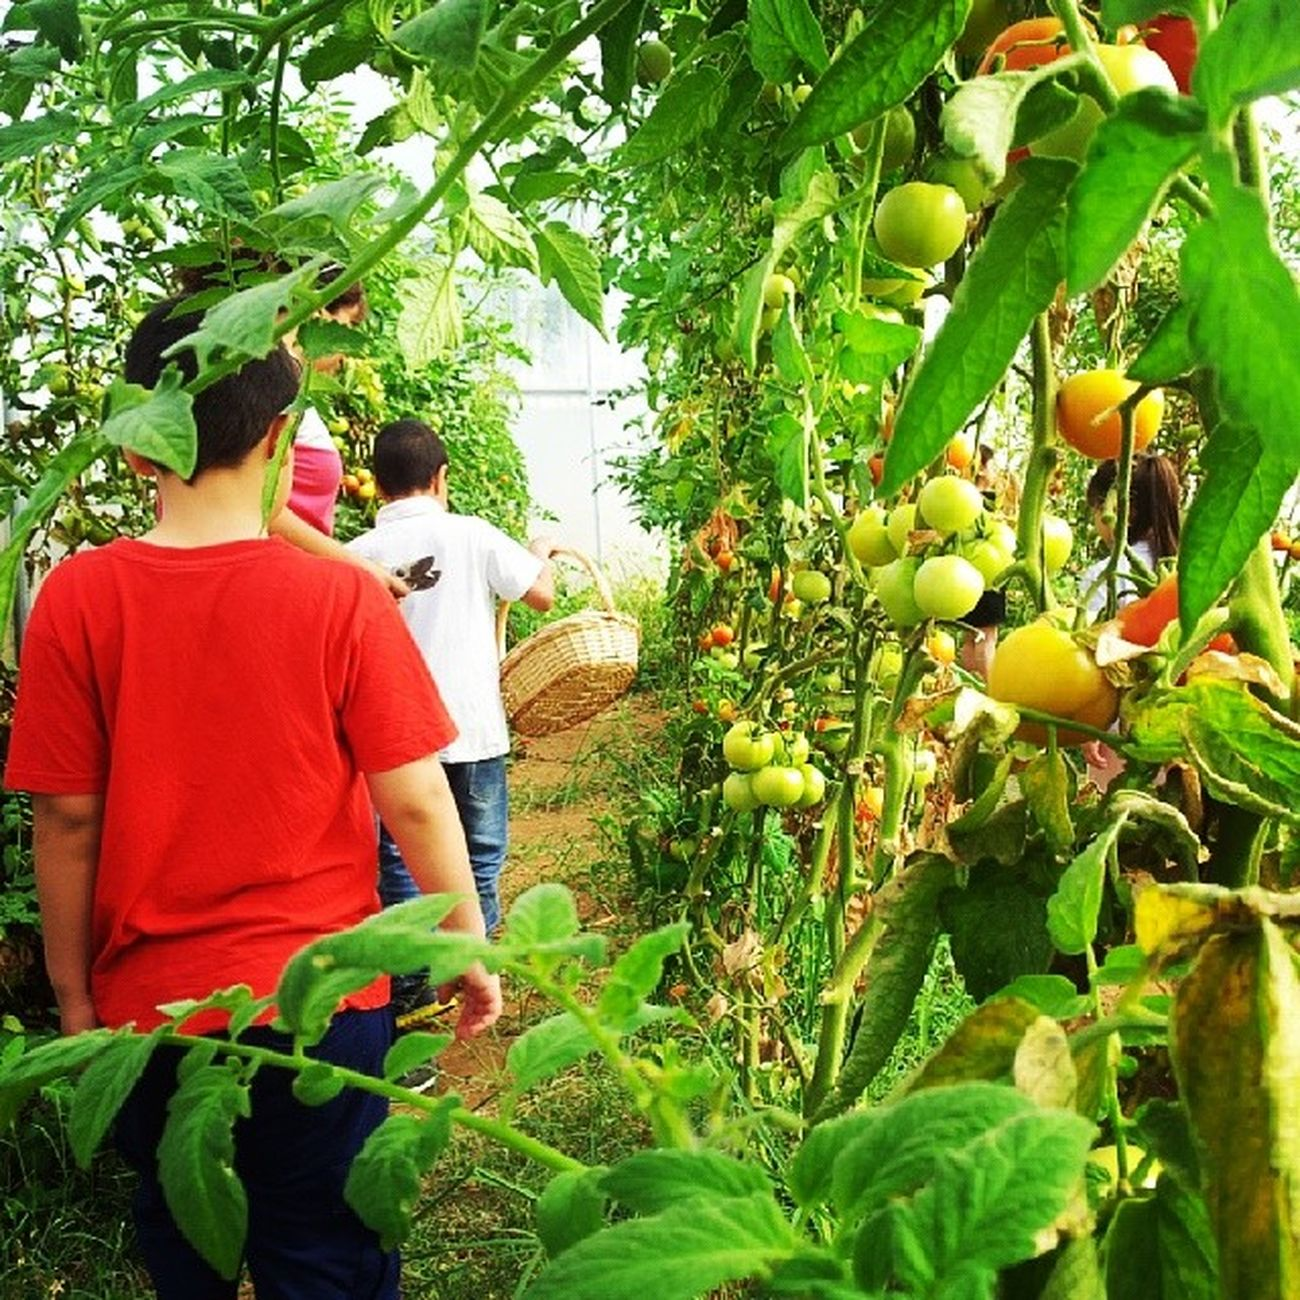 A trip to the farm with the kids!!! Trip With My Lovely Kids From  My School Farm Naturephotos Nature Naturephotography LoveNature Loveearth Organicfarm Organicfood Organic OrganicTomatoes Tomatoes